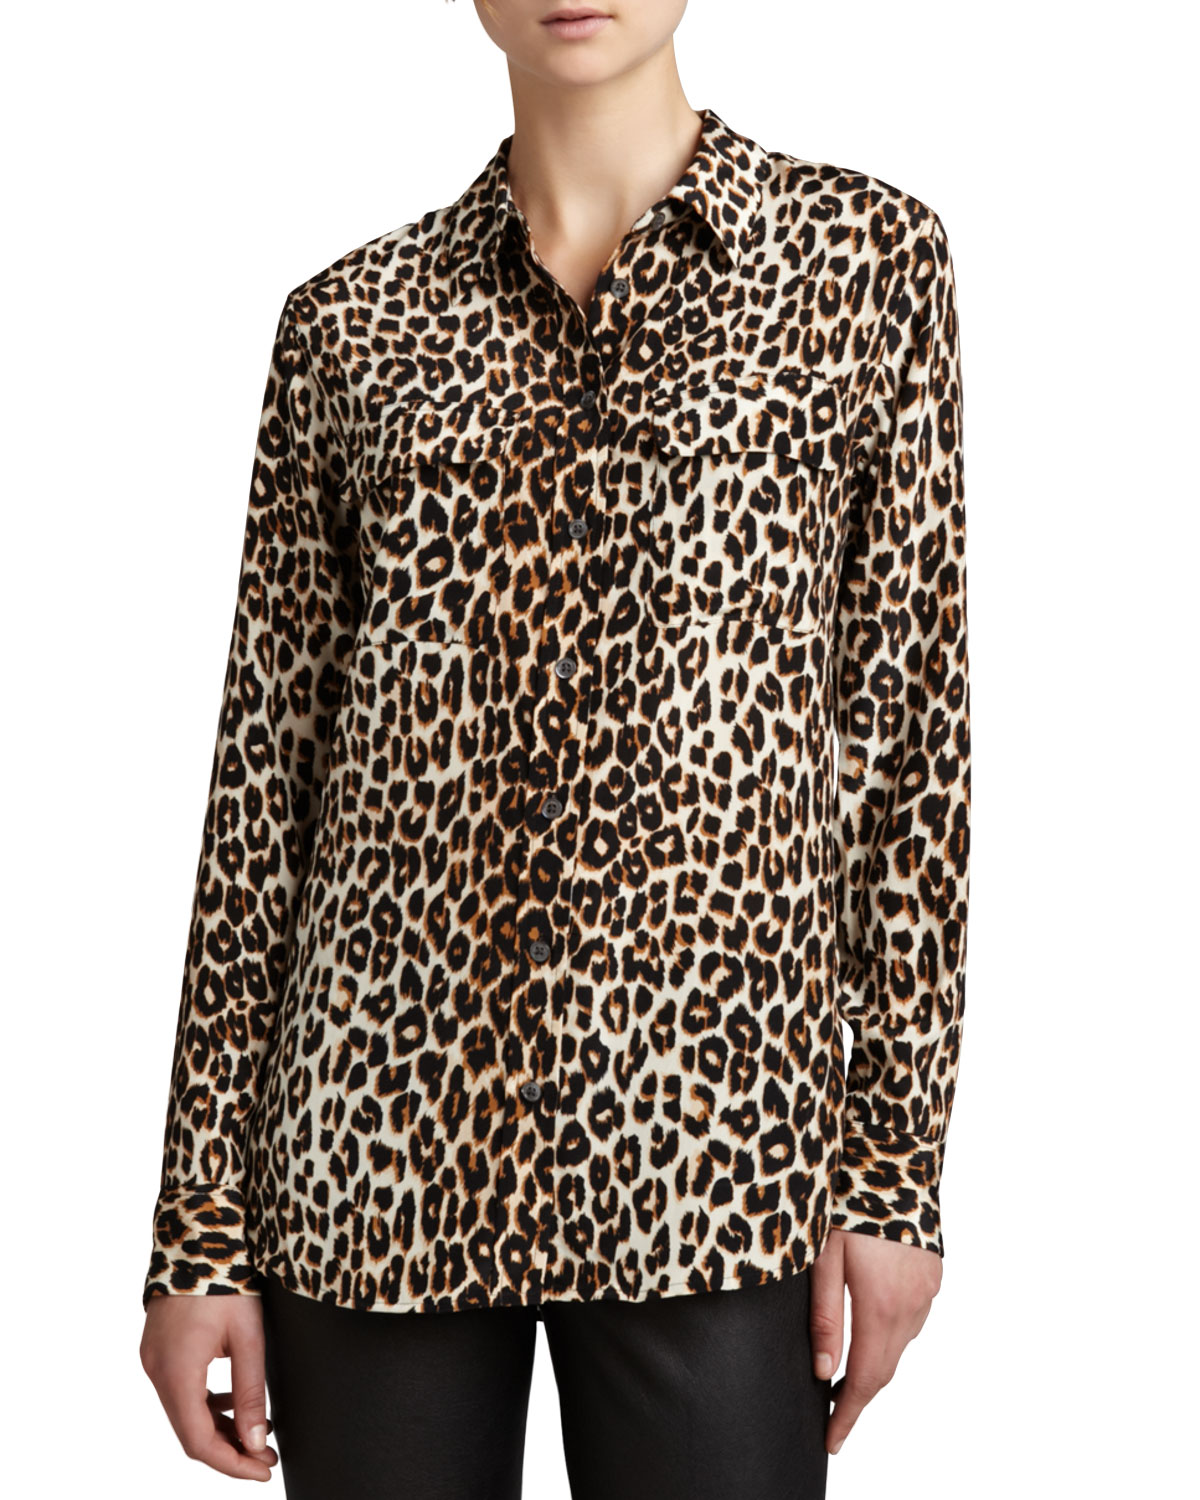 ab927c3c12e073 Equipment Slim Signature Leopard-Print Blouse